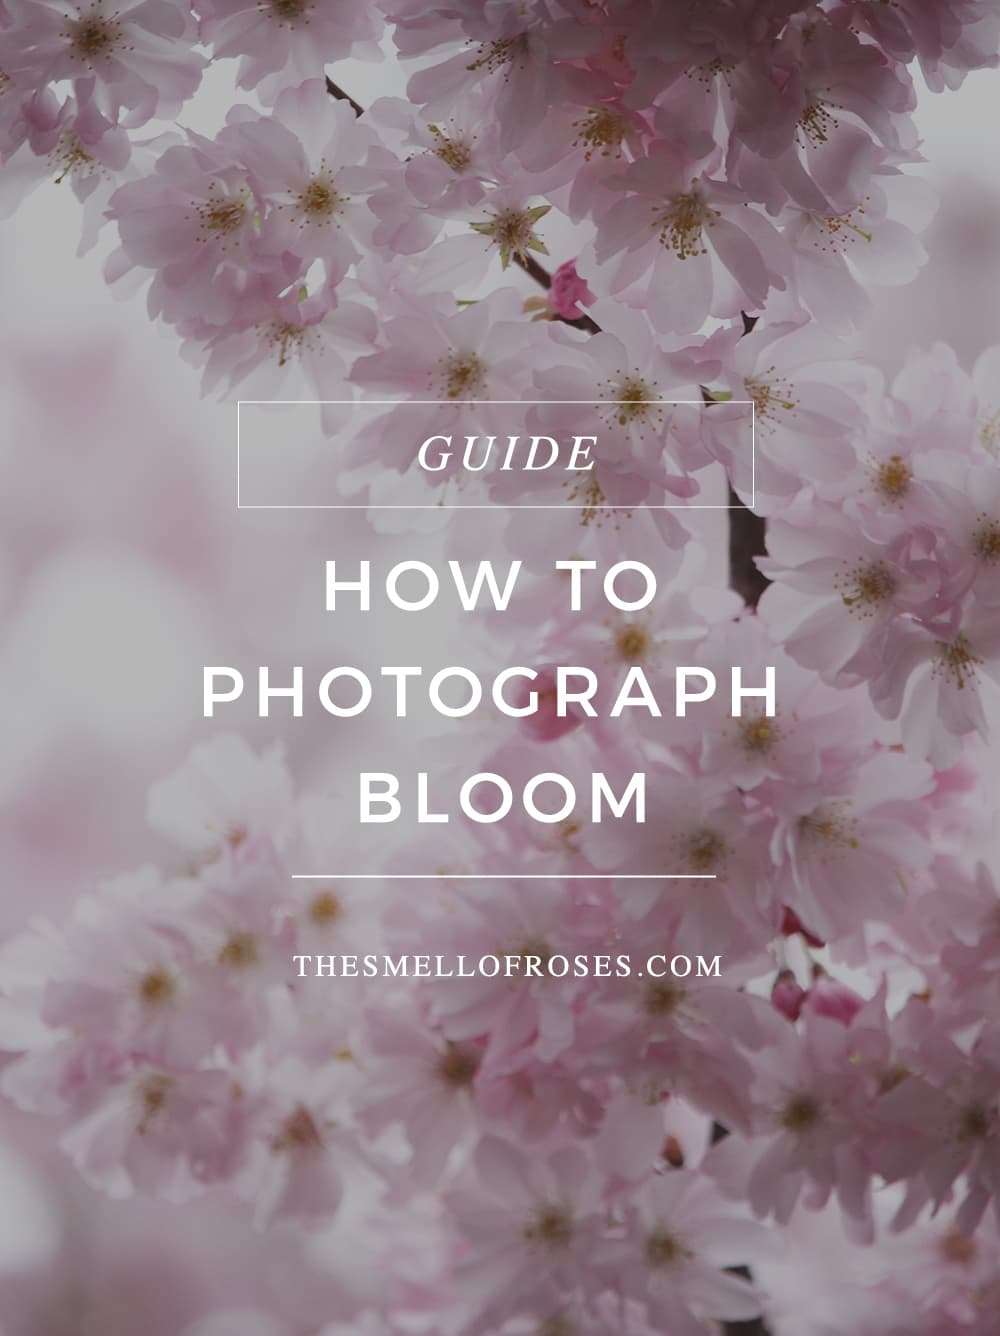 How To Photograph Flowering Trees The Smell Of Roses The Smell Of